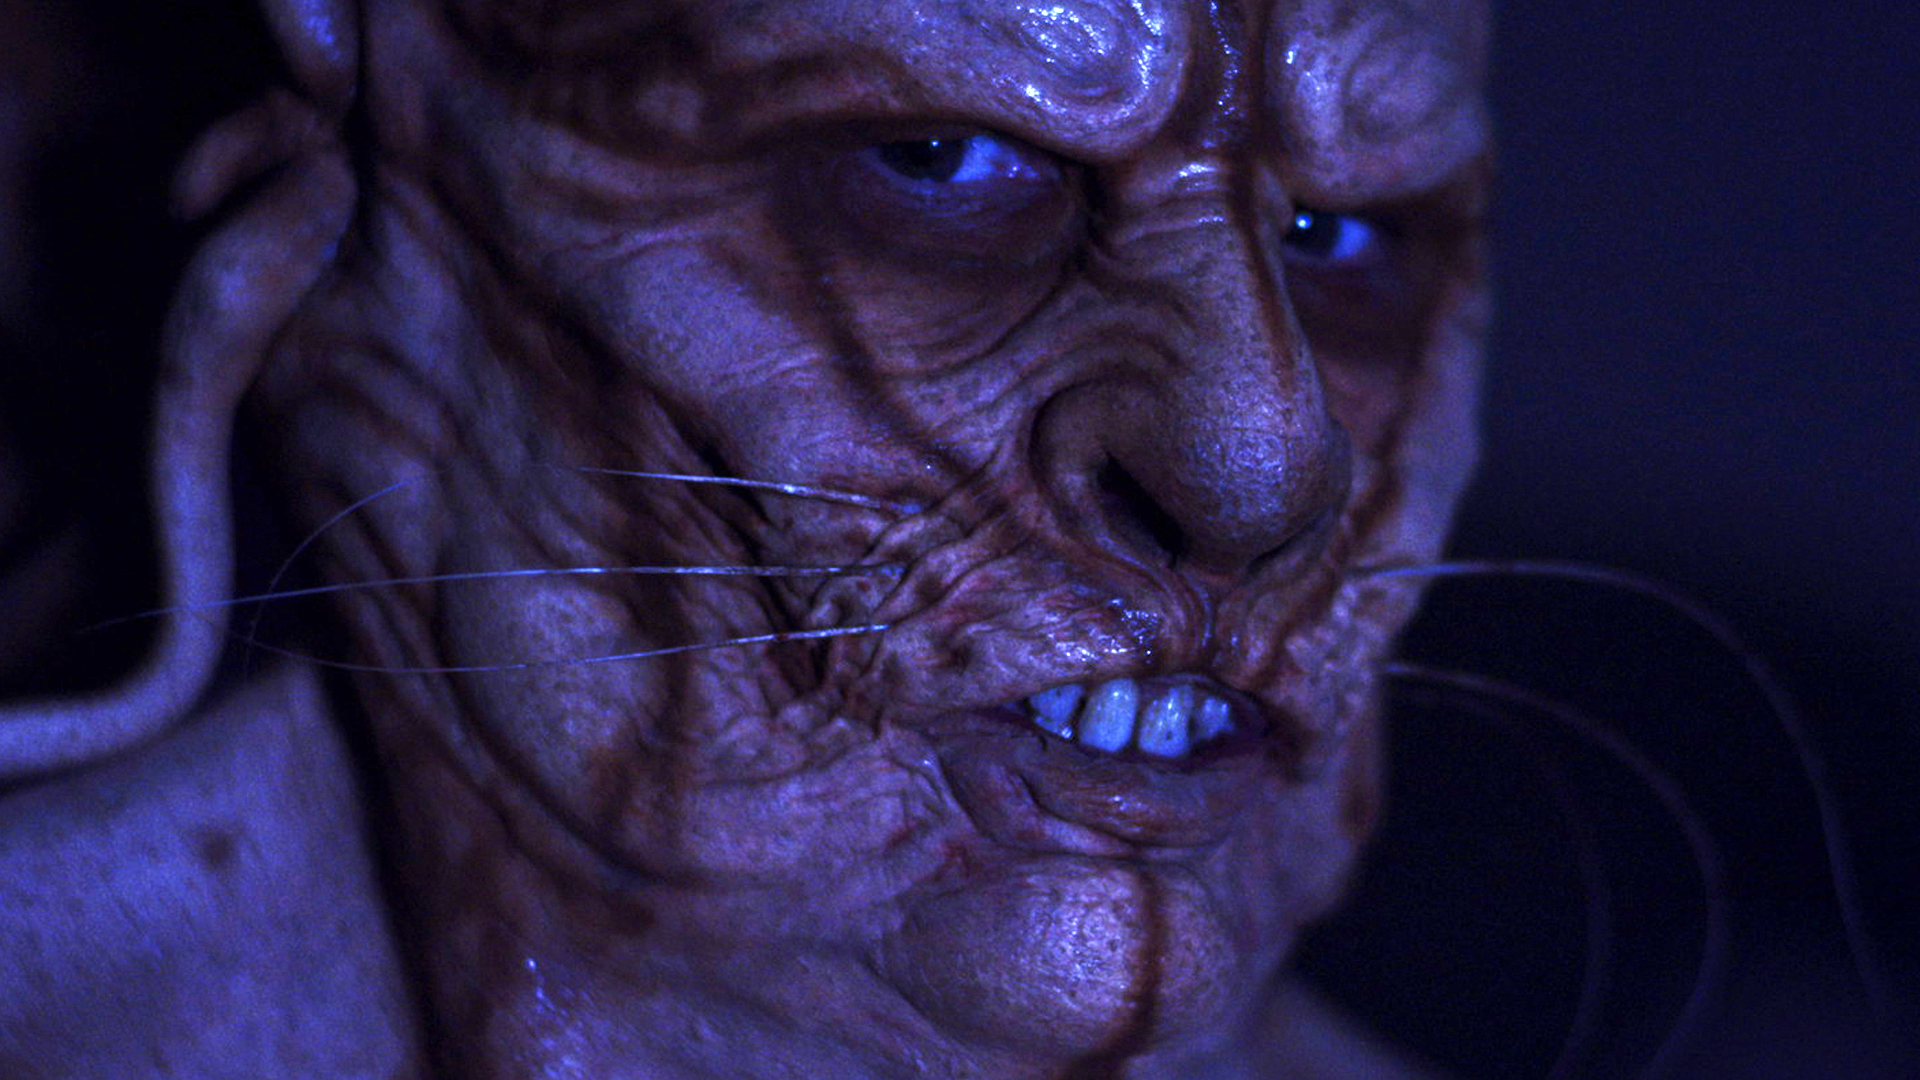 rottentail11